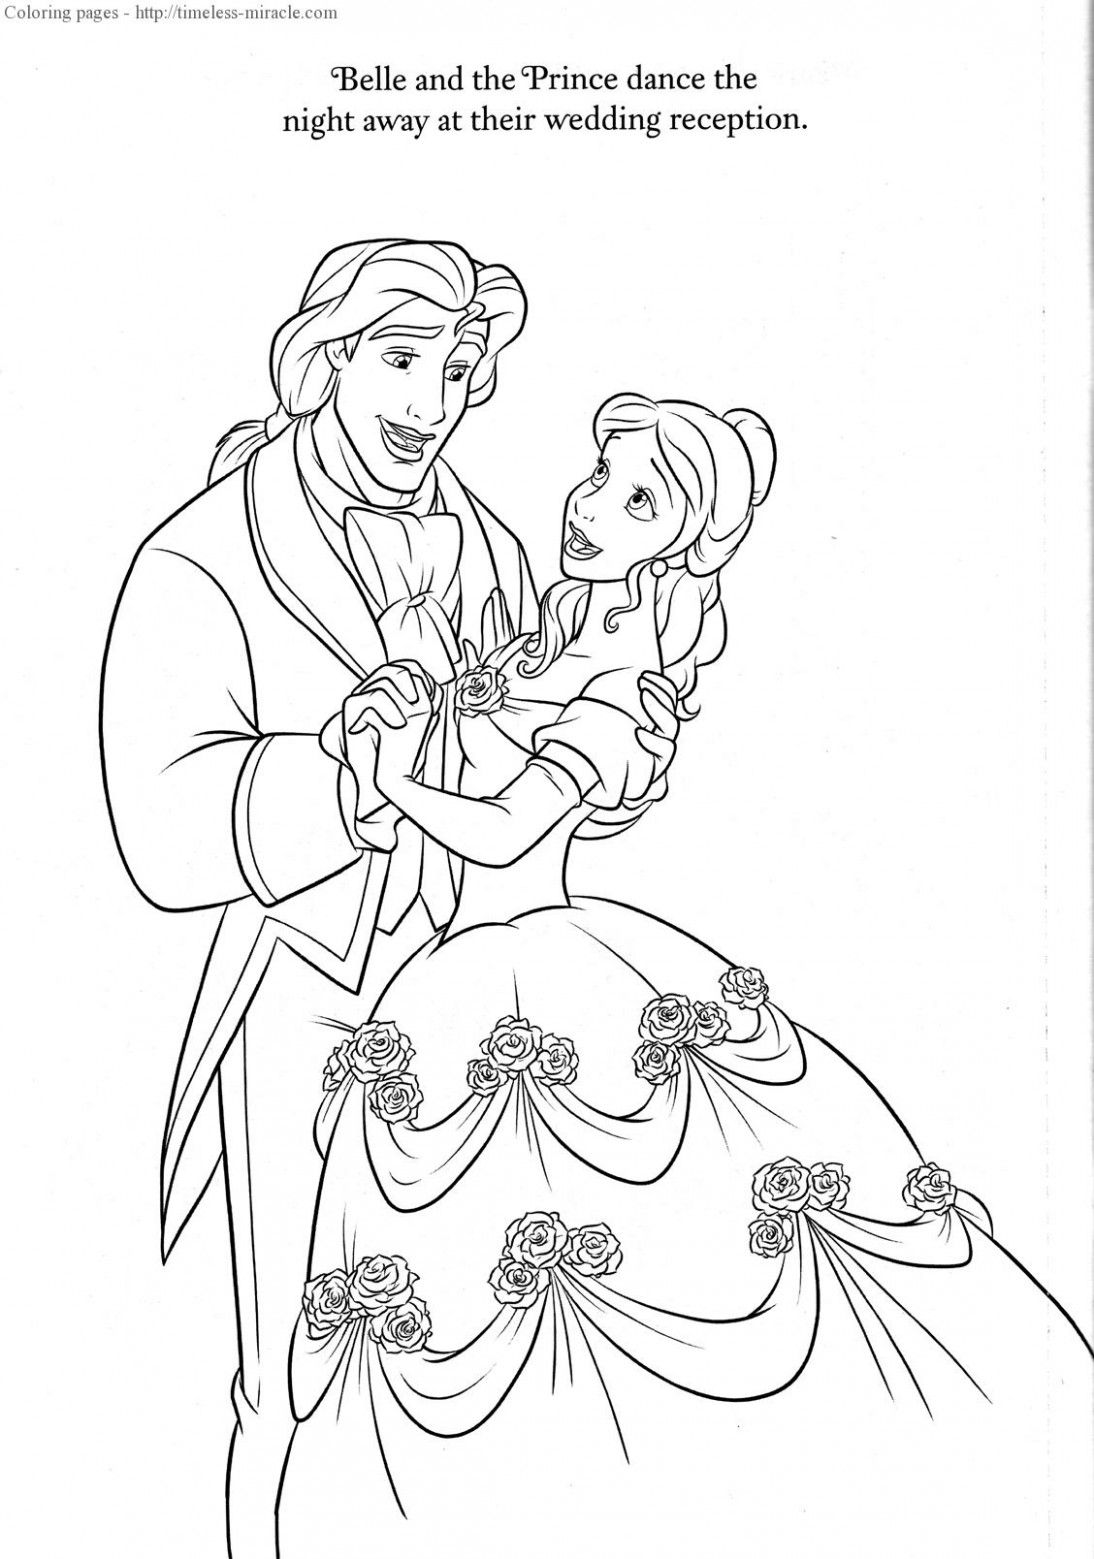 Disney Wedding Drawing Coloring Pages Disney Coloring Pages Love Coloring Pages Wedding Coloring Pages